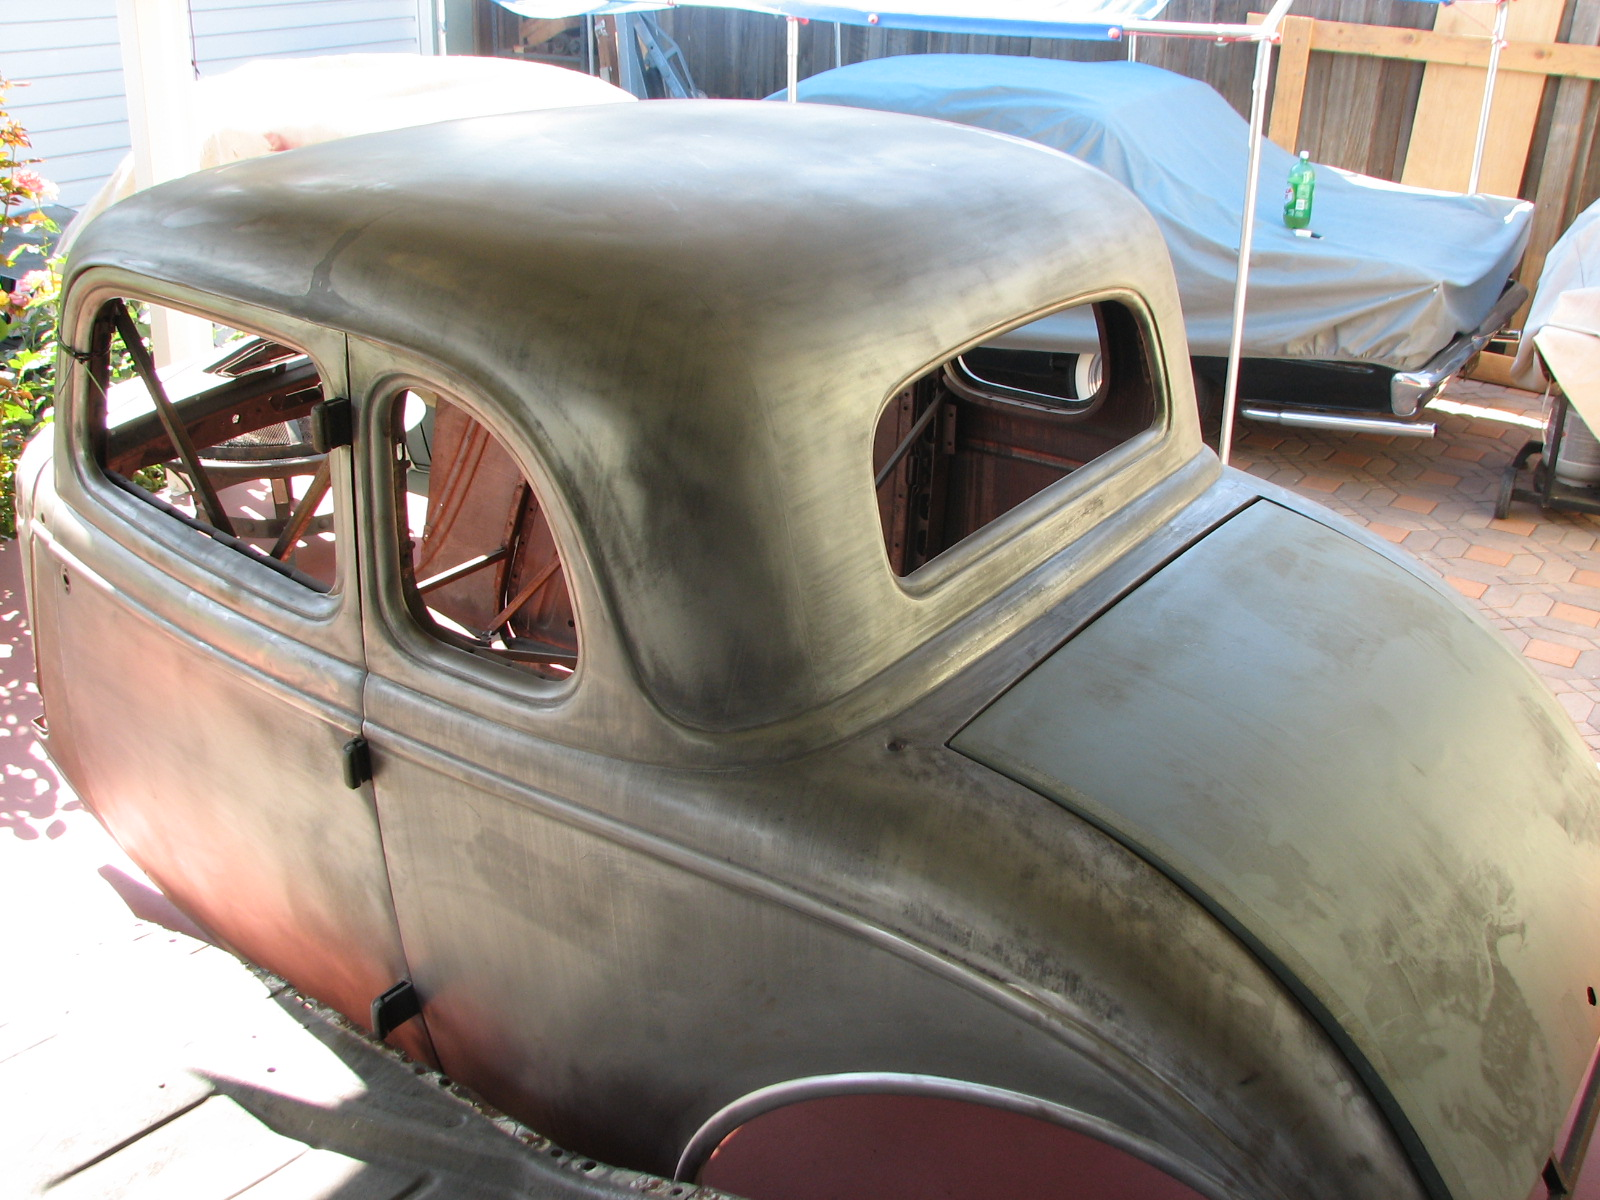 34 ford 3 window coupe steel body for sale autos weblog for 1934 ford 3 window coupe steel body